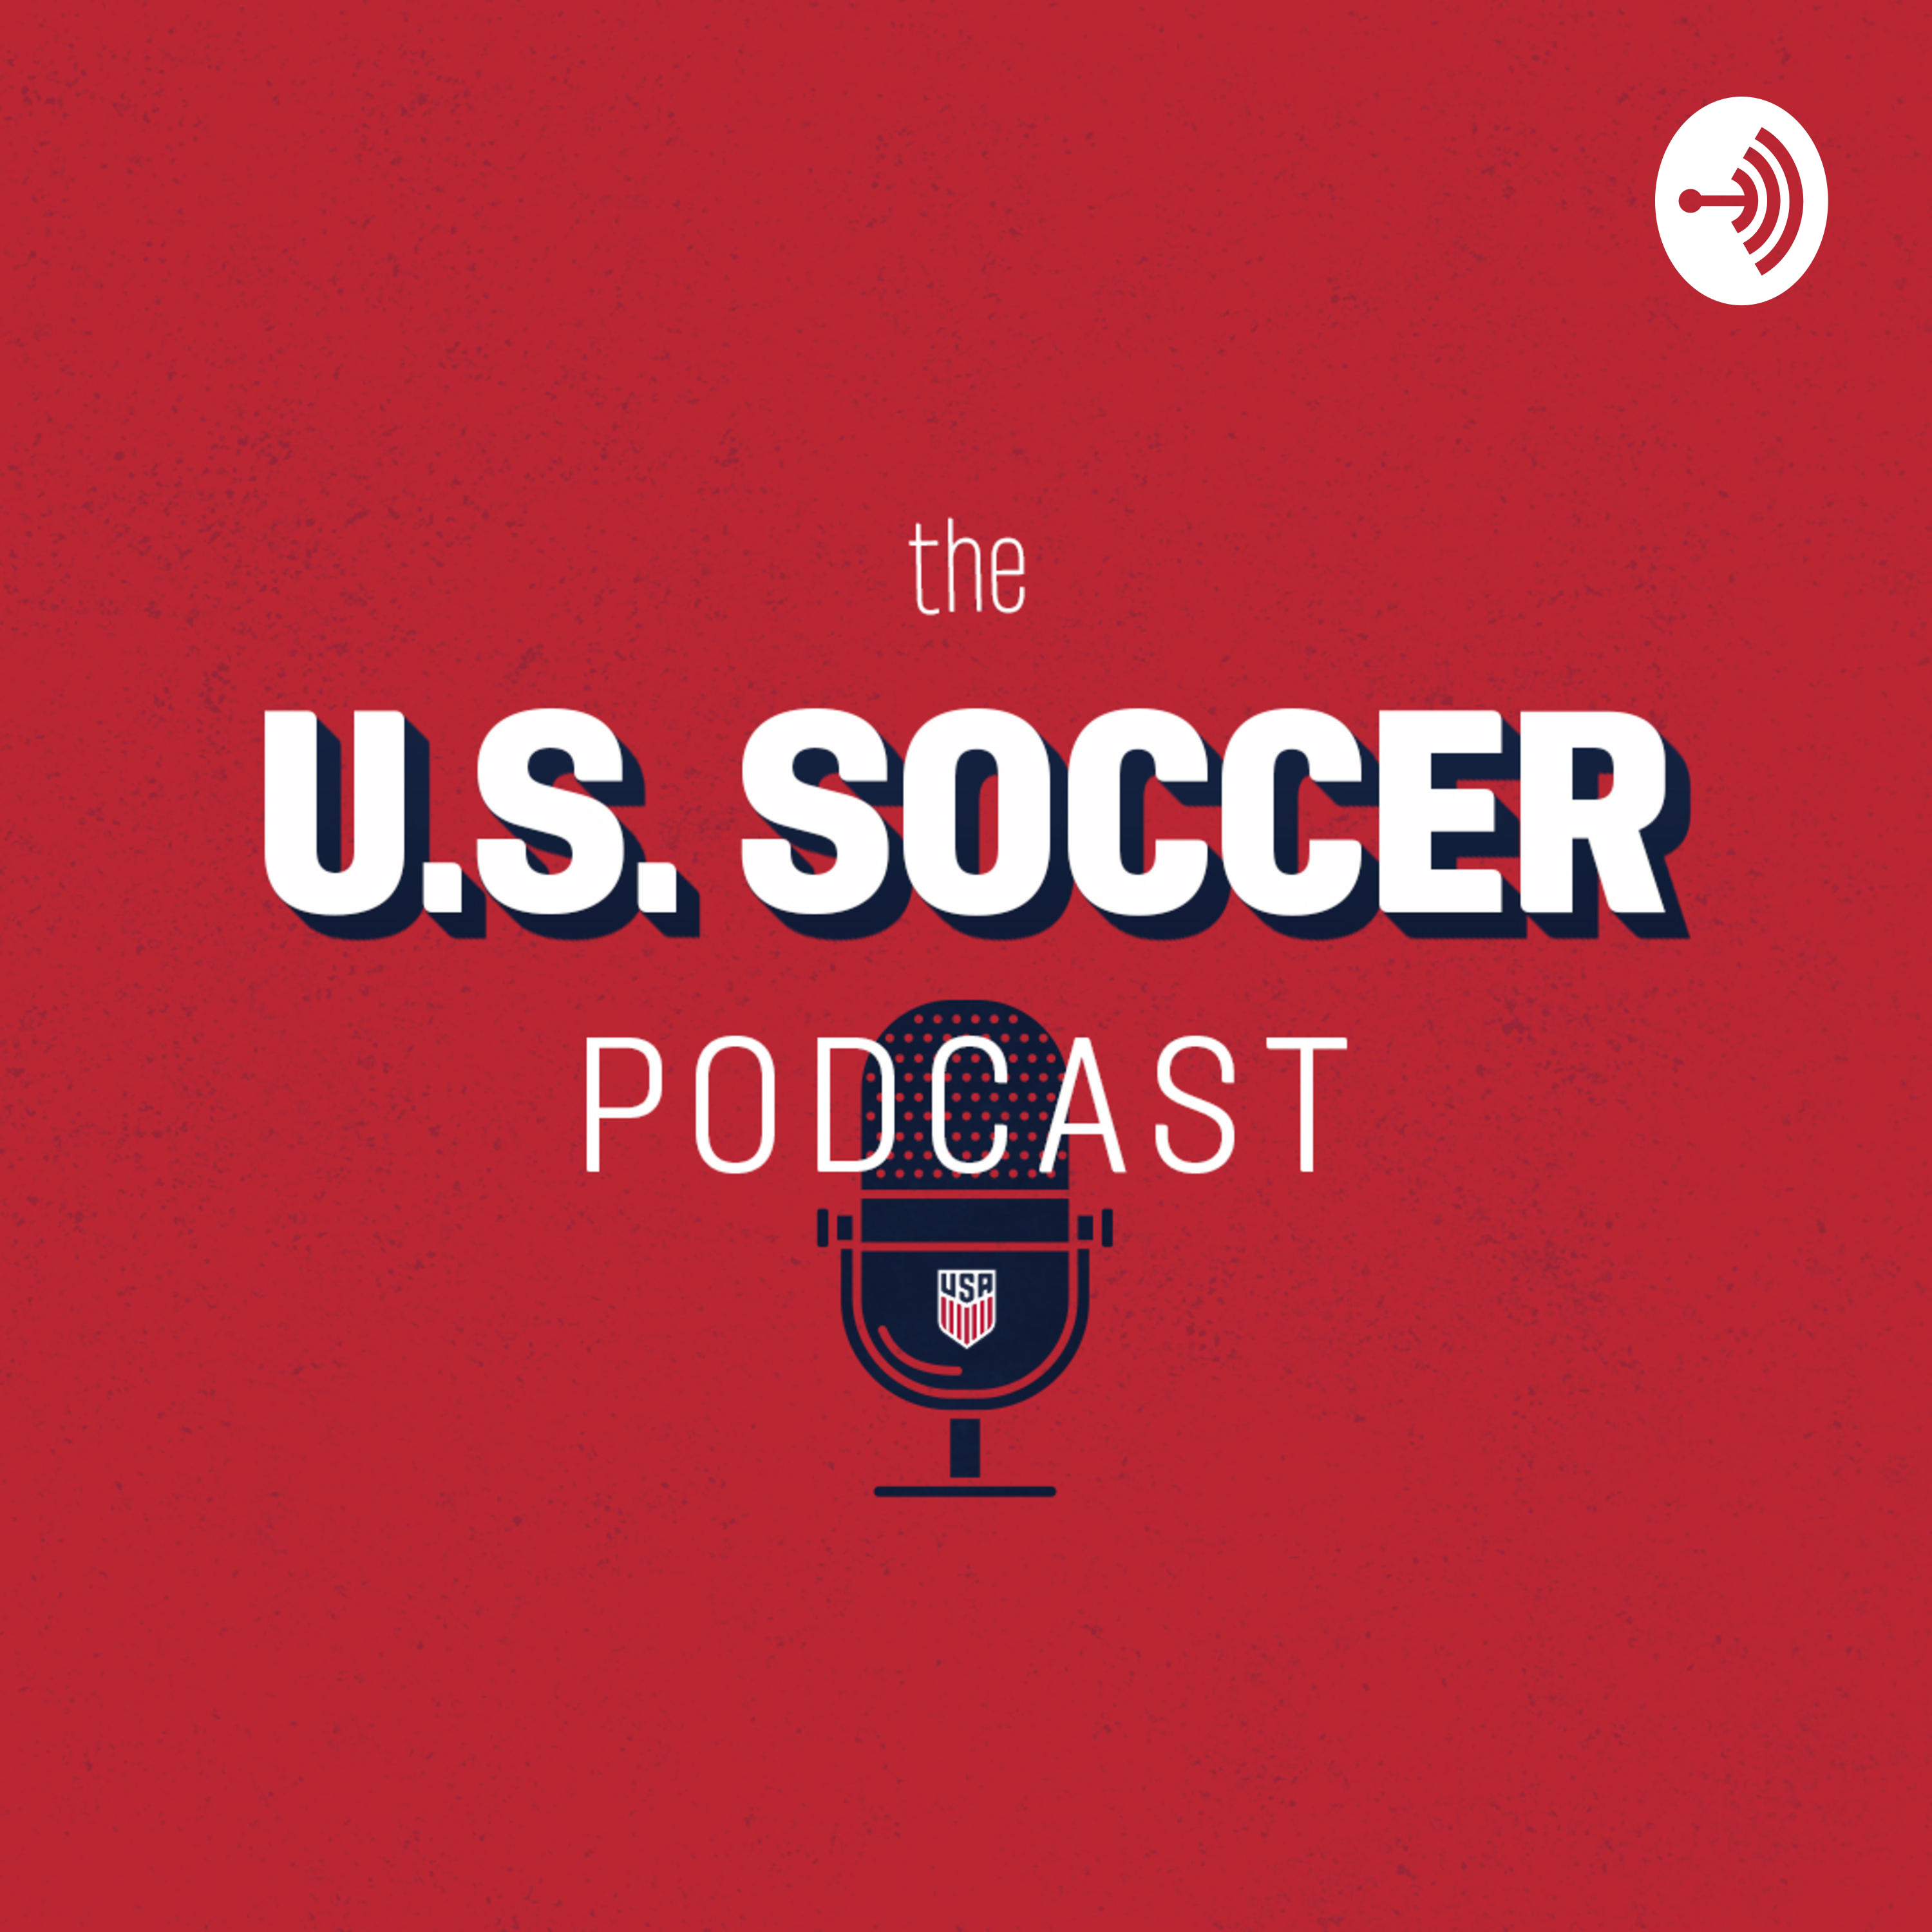 U.S. Soccer Chief Medical Officer Dr. George Chiampas